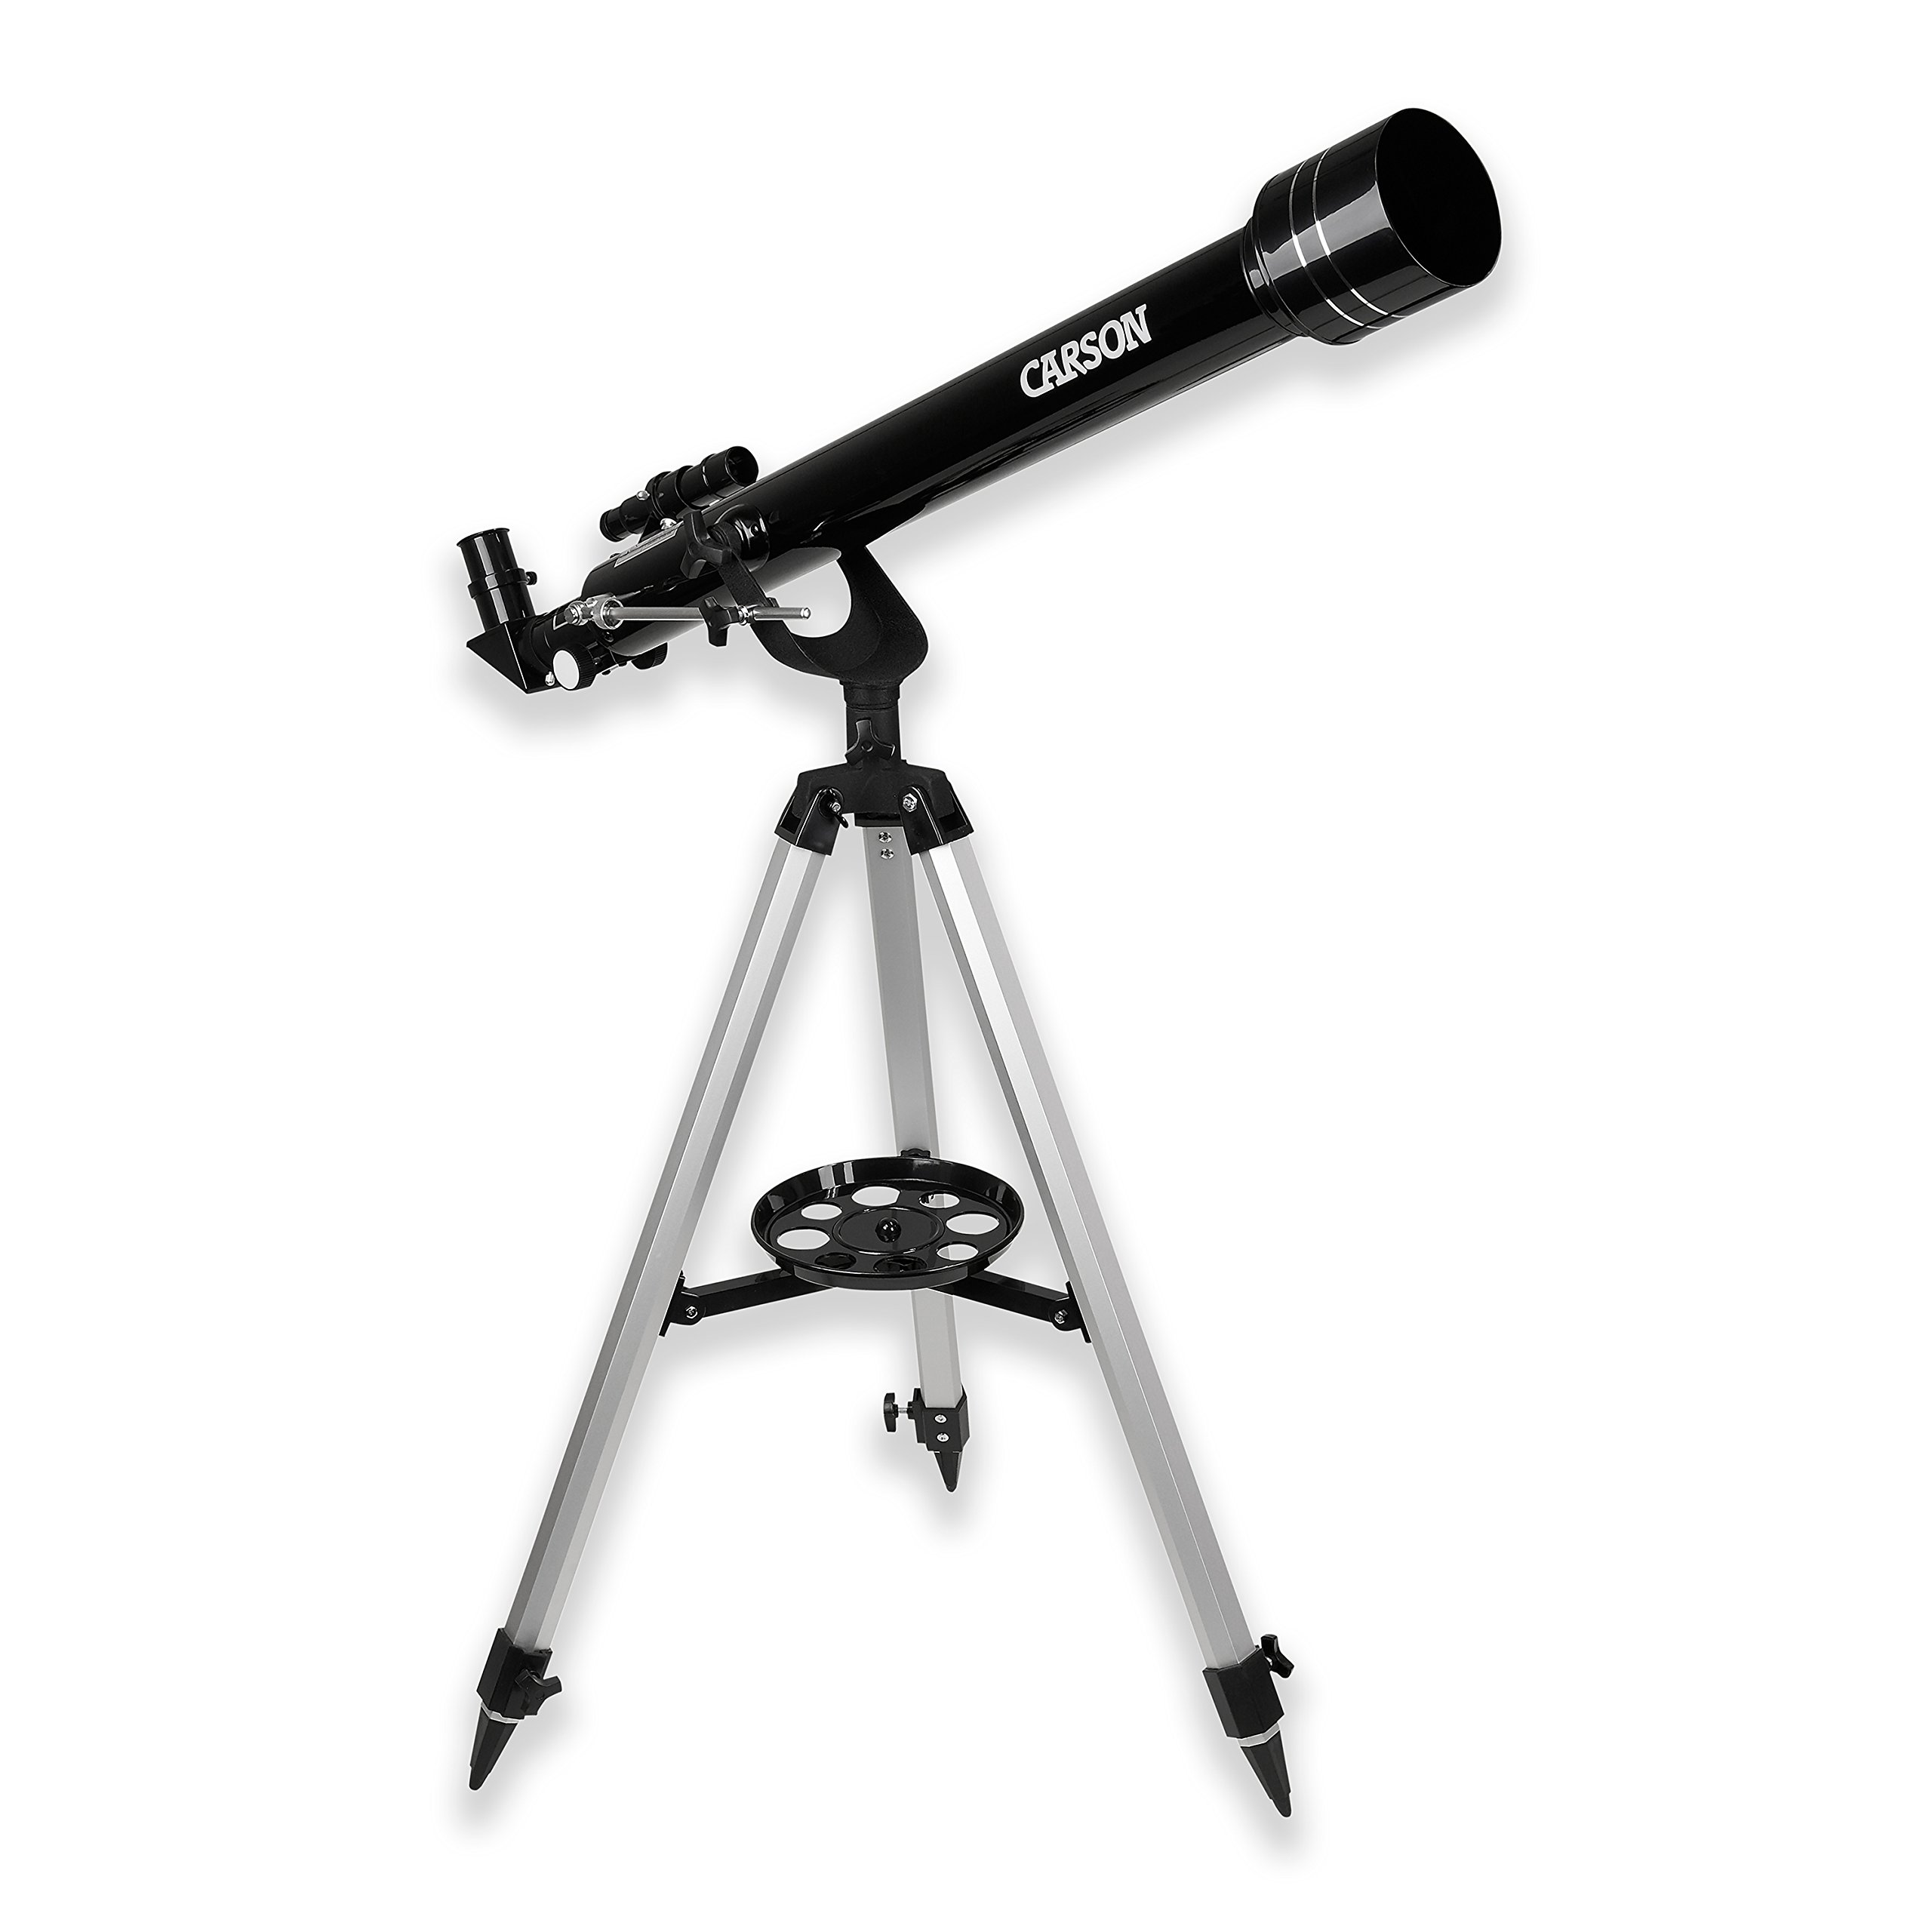 Carson SkySeeker 40-100x60mm Refractor Beginner Telescope with Tripod (JC-1000) by Carson